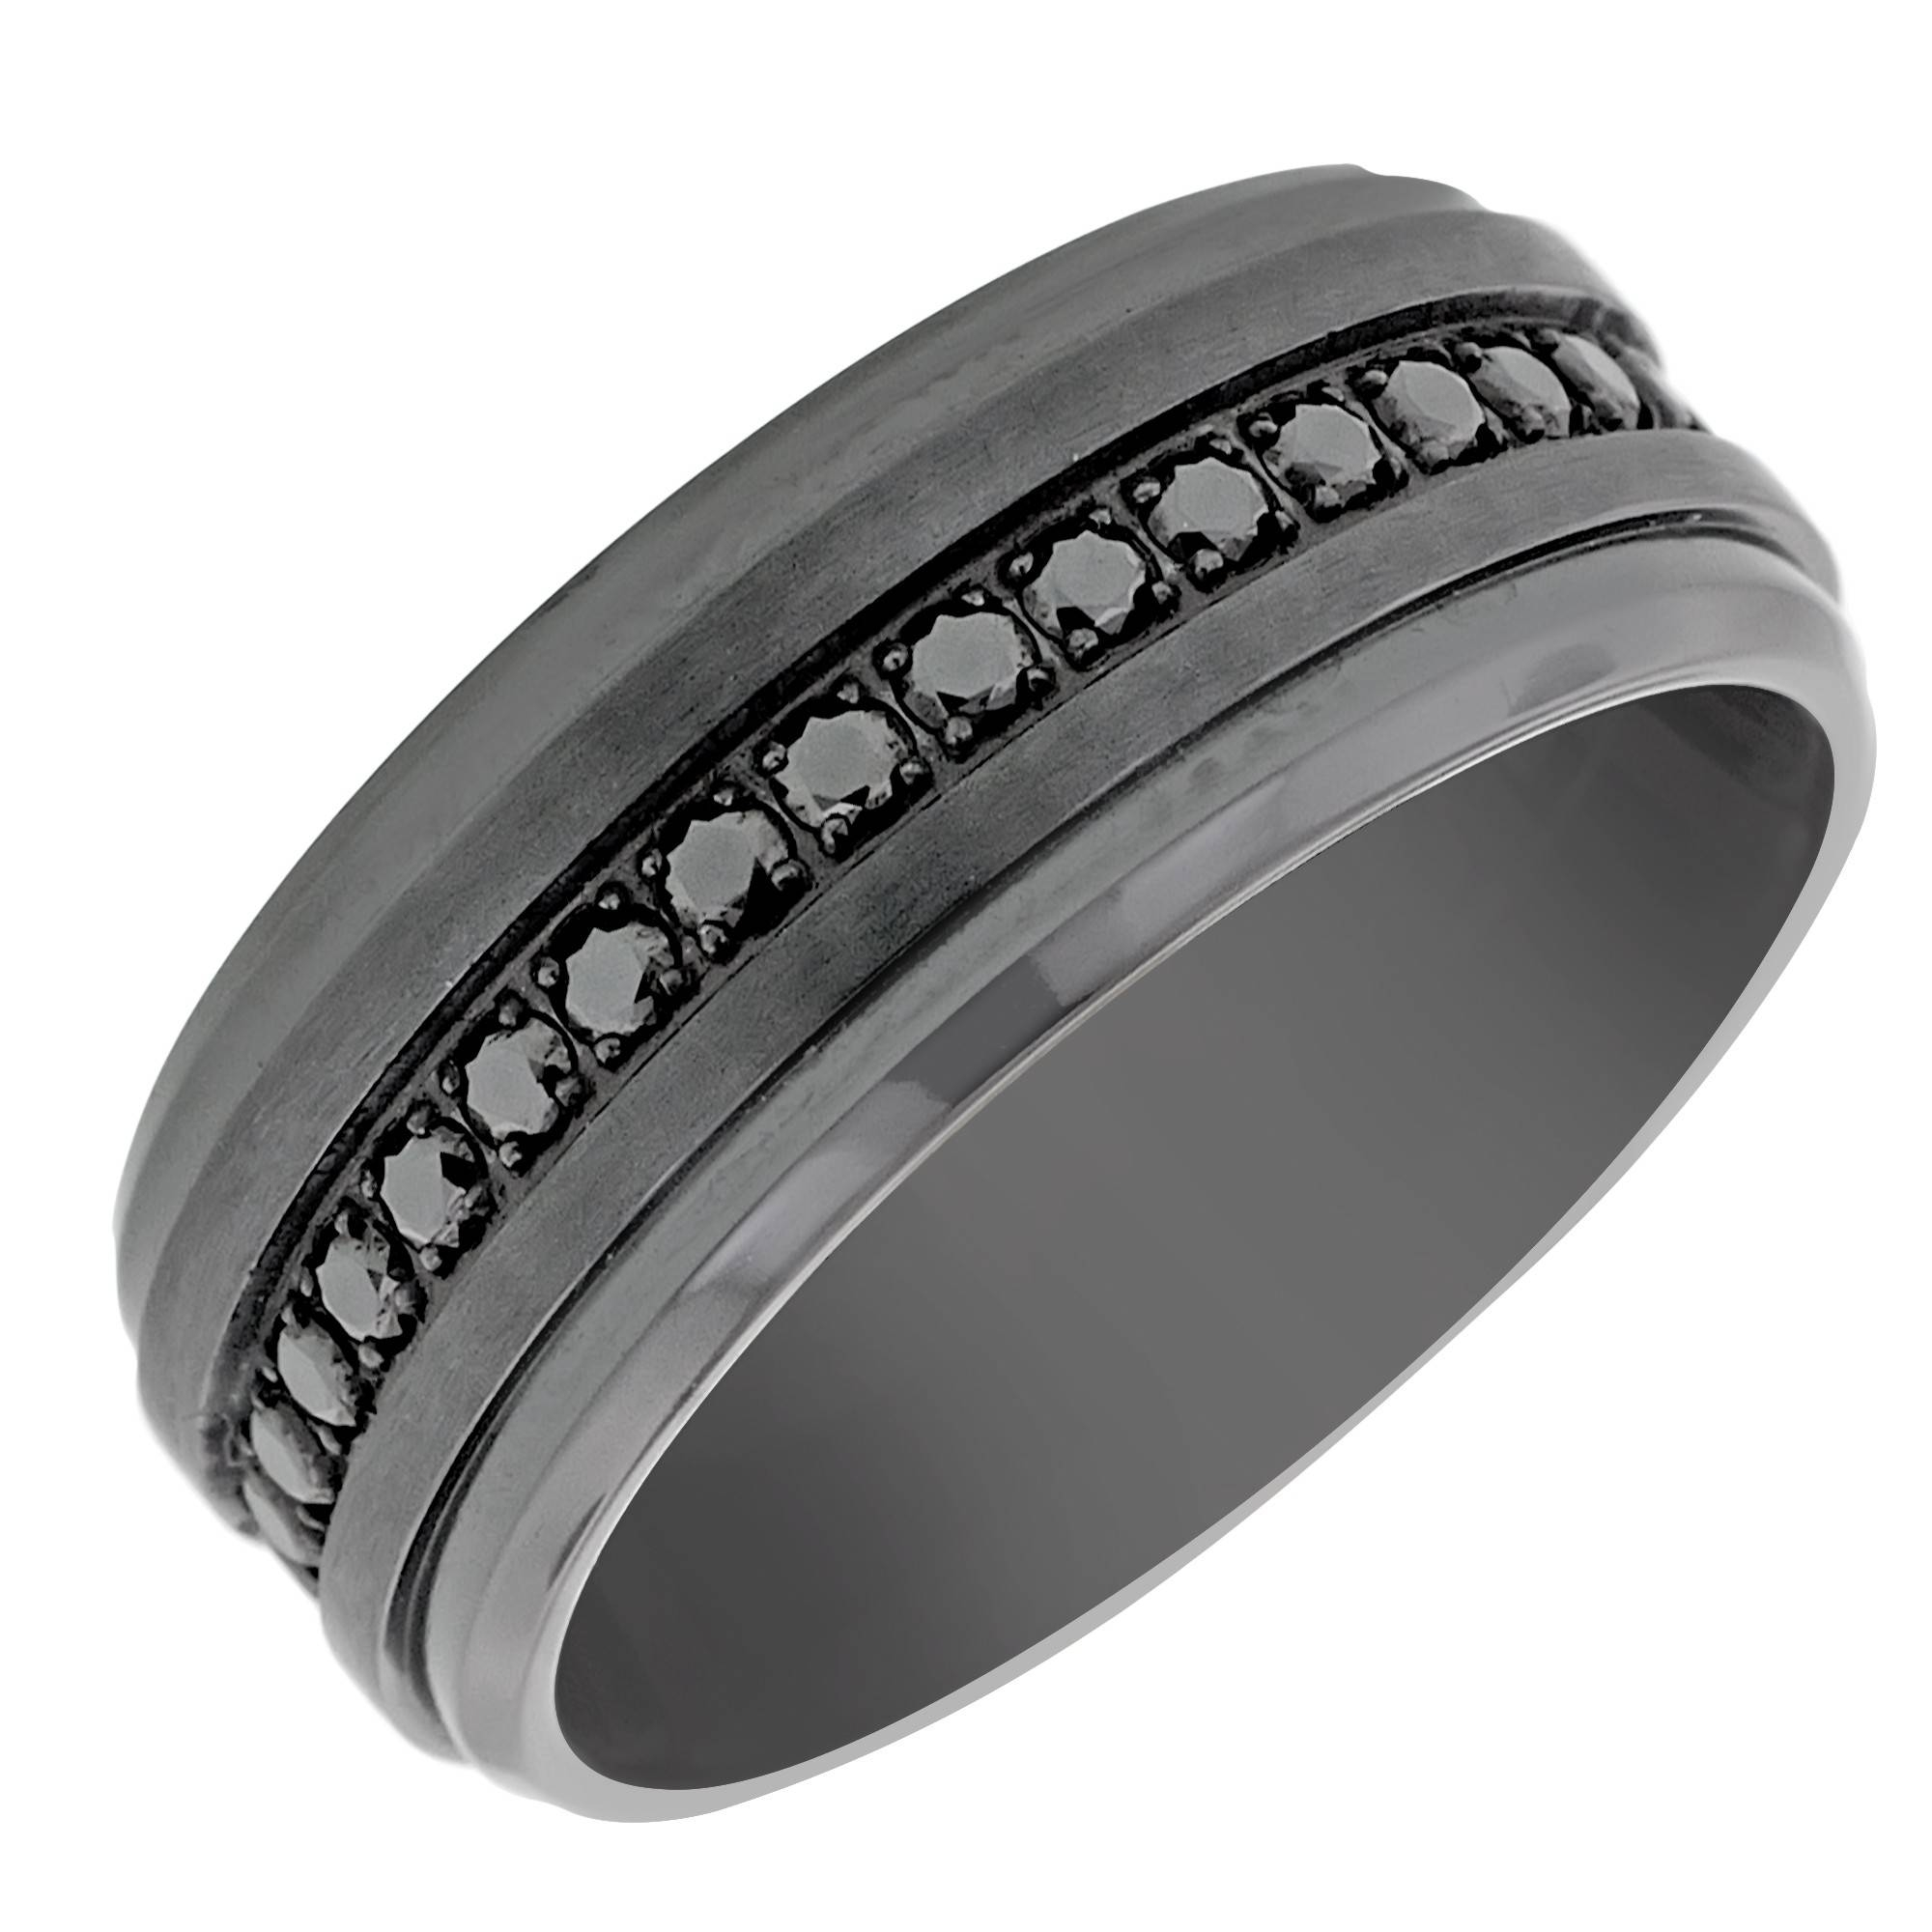 Benchmark Mens Black Cubic Zirconia Wedding Band In Black Titanium Within Men's Cz Wedding Bands (View 3 of 15)